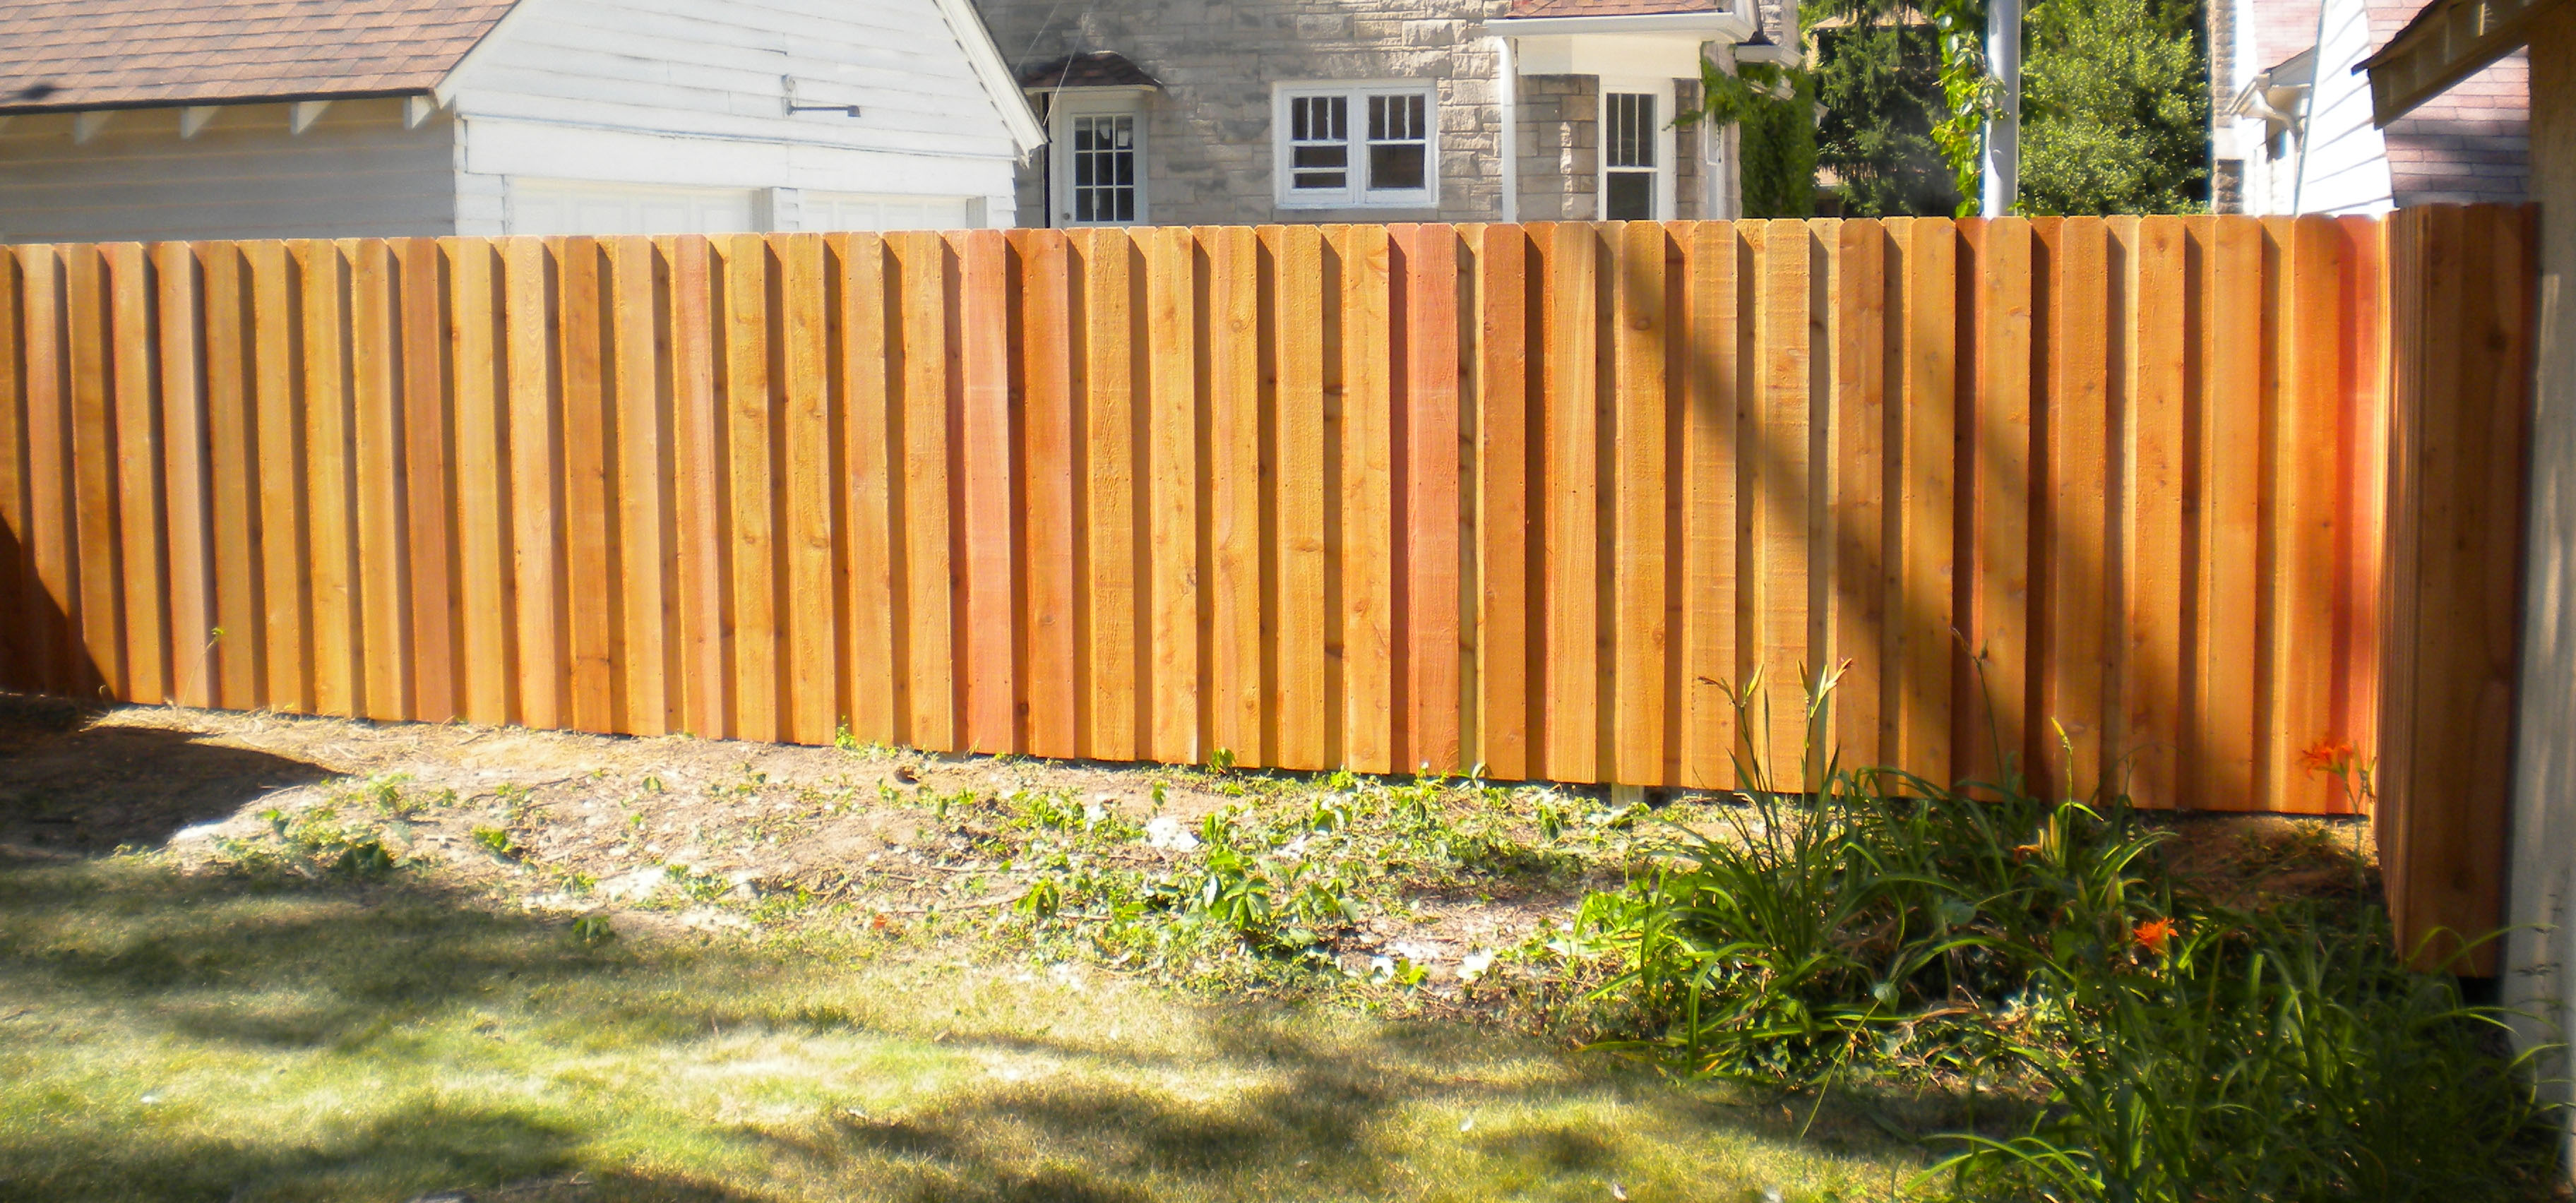 Dog eared courtyard fence jed buxton design build cedar wood baanklon Gallery